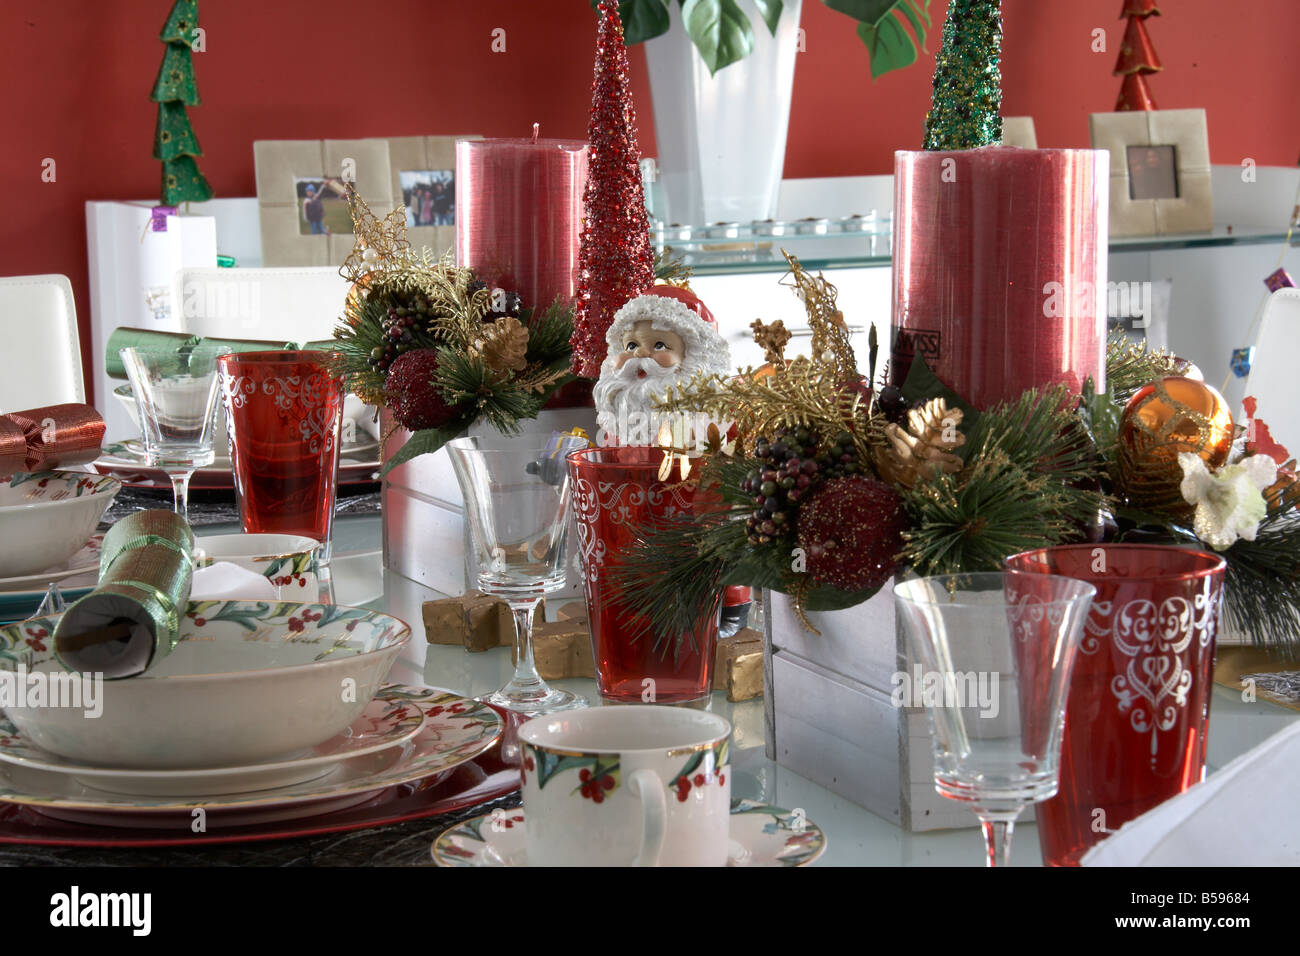 table laid with christmas decorations tableware and ornaments in brisbane queensland qld australia stock image - Christmas Decorations Australia